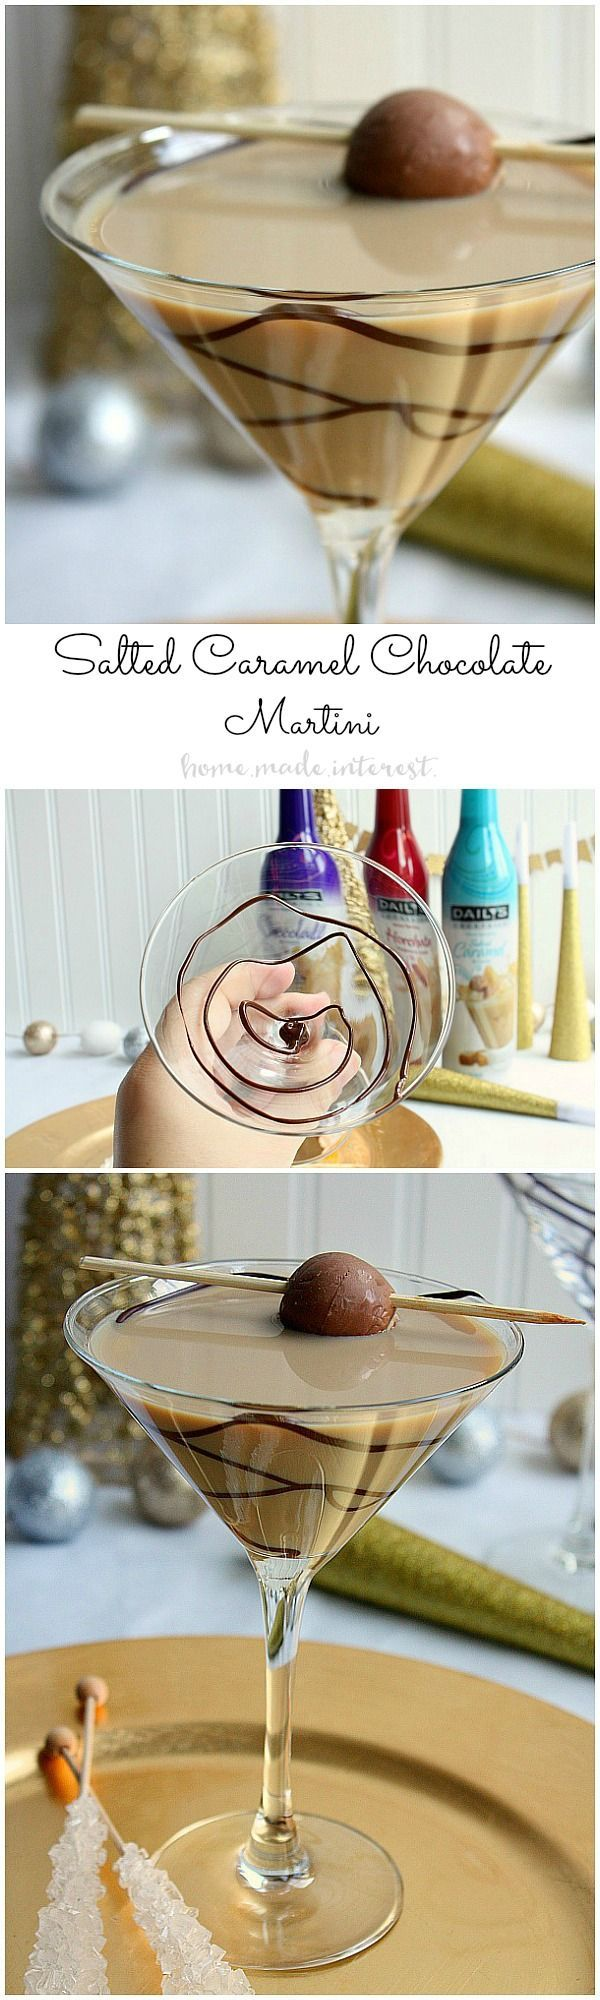 Throw a Bling New Year's Eve party and make this simple martini recipe for a Salted Caramel Chocolate martini as your signature drink! Content for 21+ DailysDessertCocktails AD @dailyscocktails